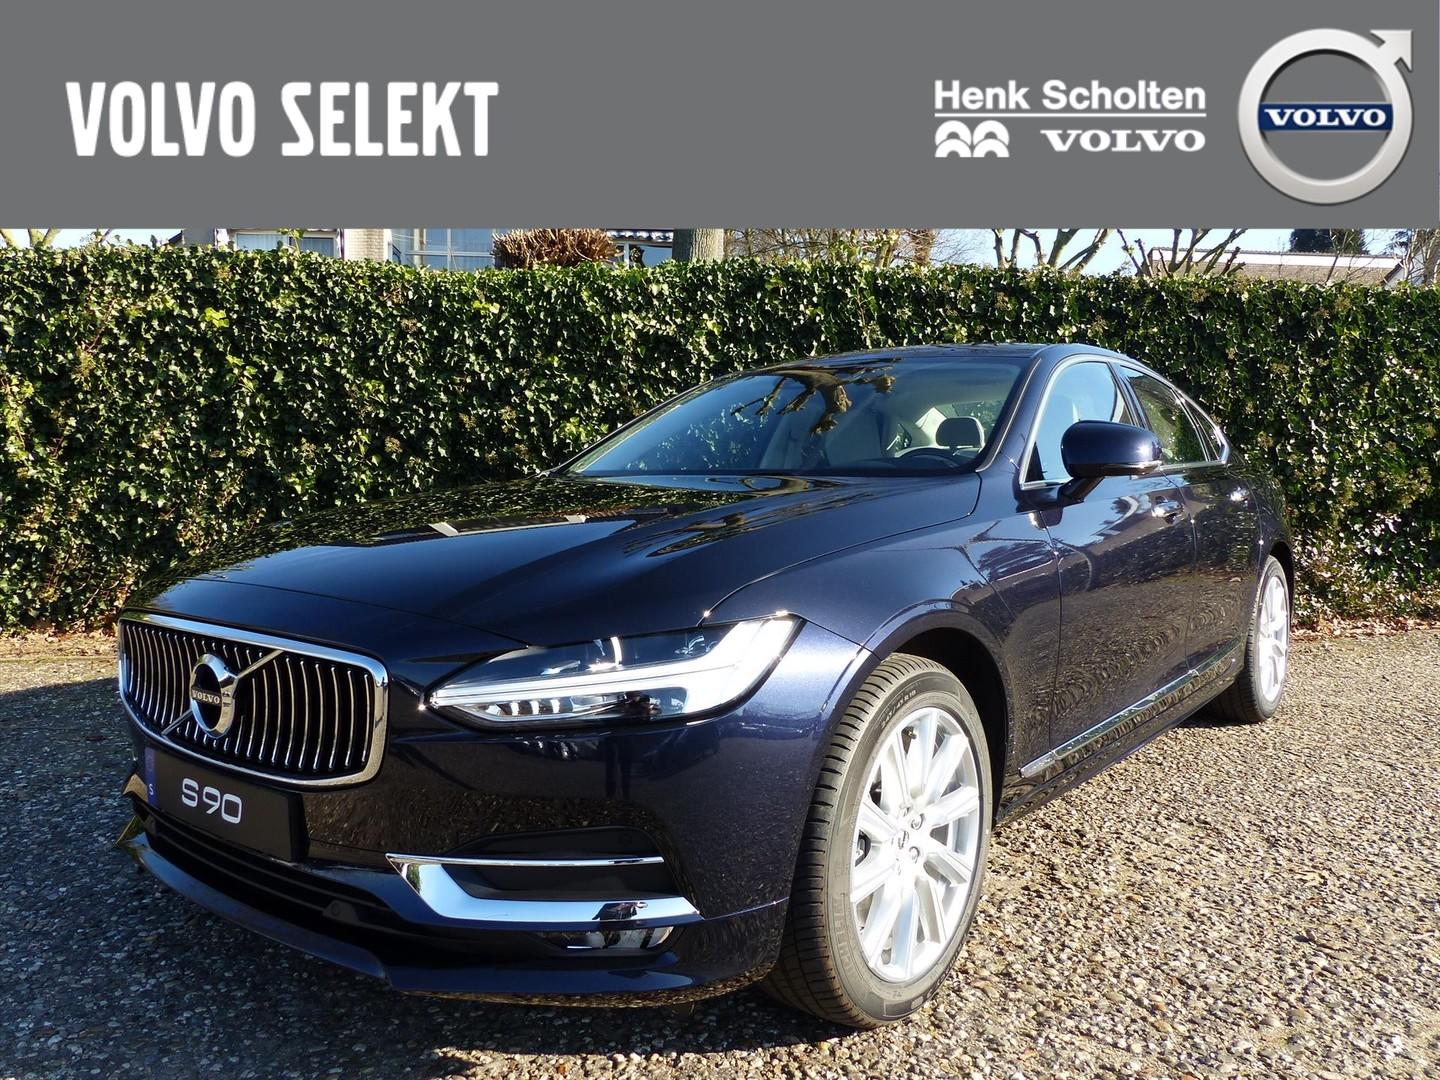 Volvo S90 T4 210pk gt inscription bus. pack pro, schuifdak, intellisafe